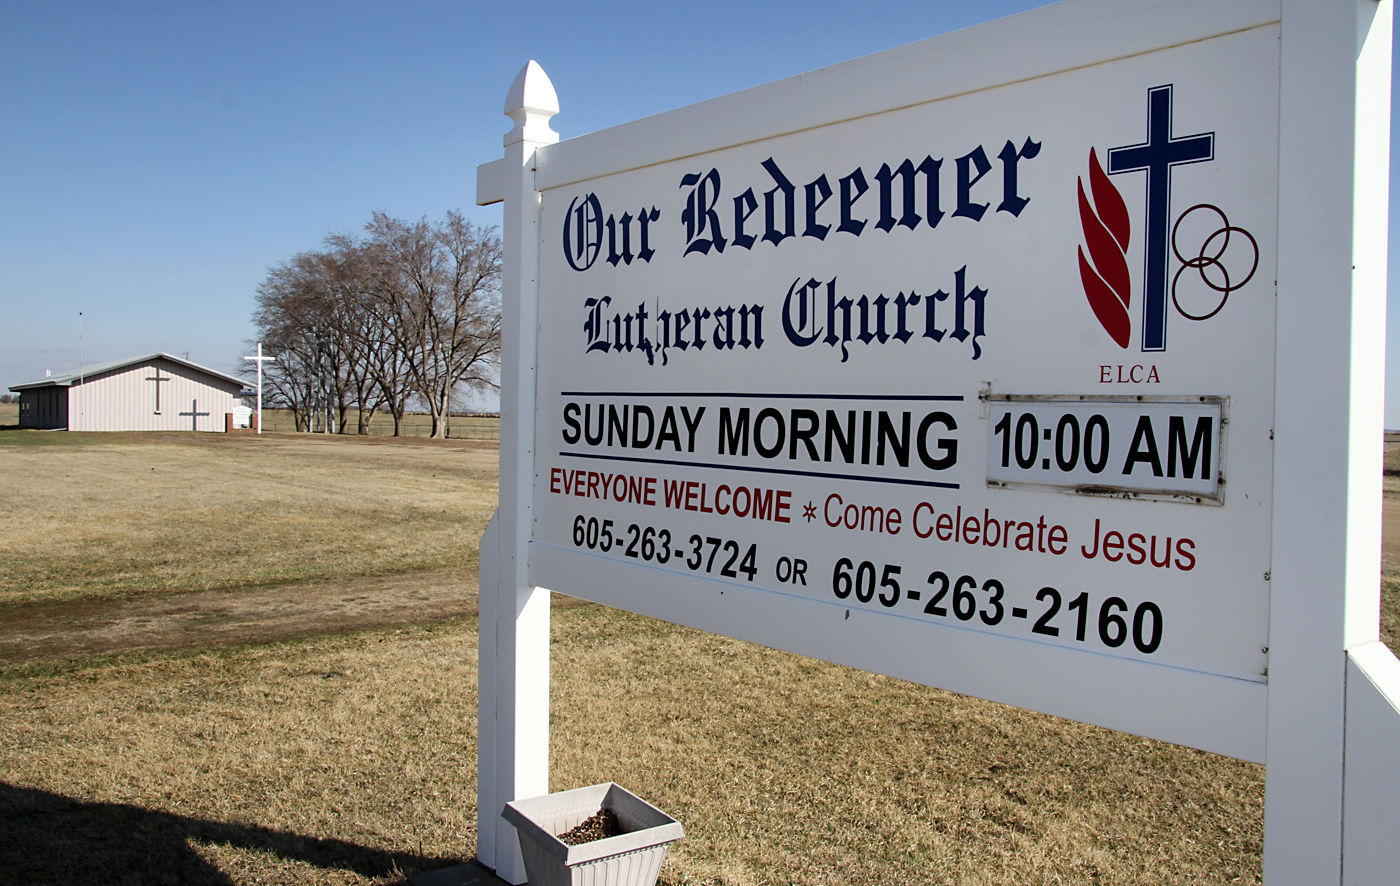 copy of resignation letter%0A Our Redeemer Lutheran Church